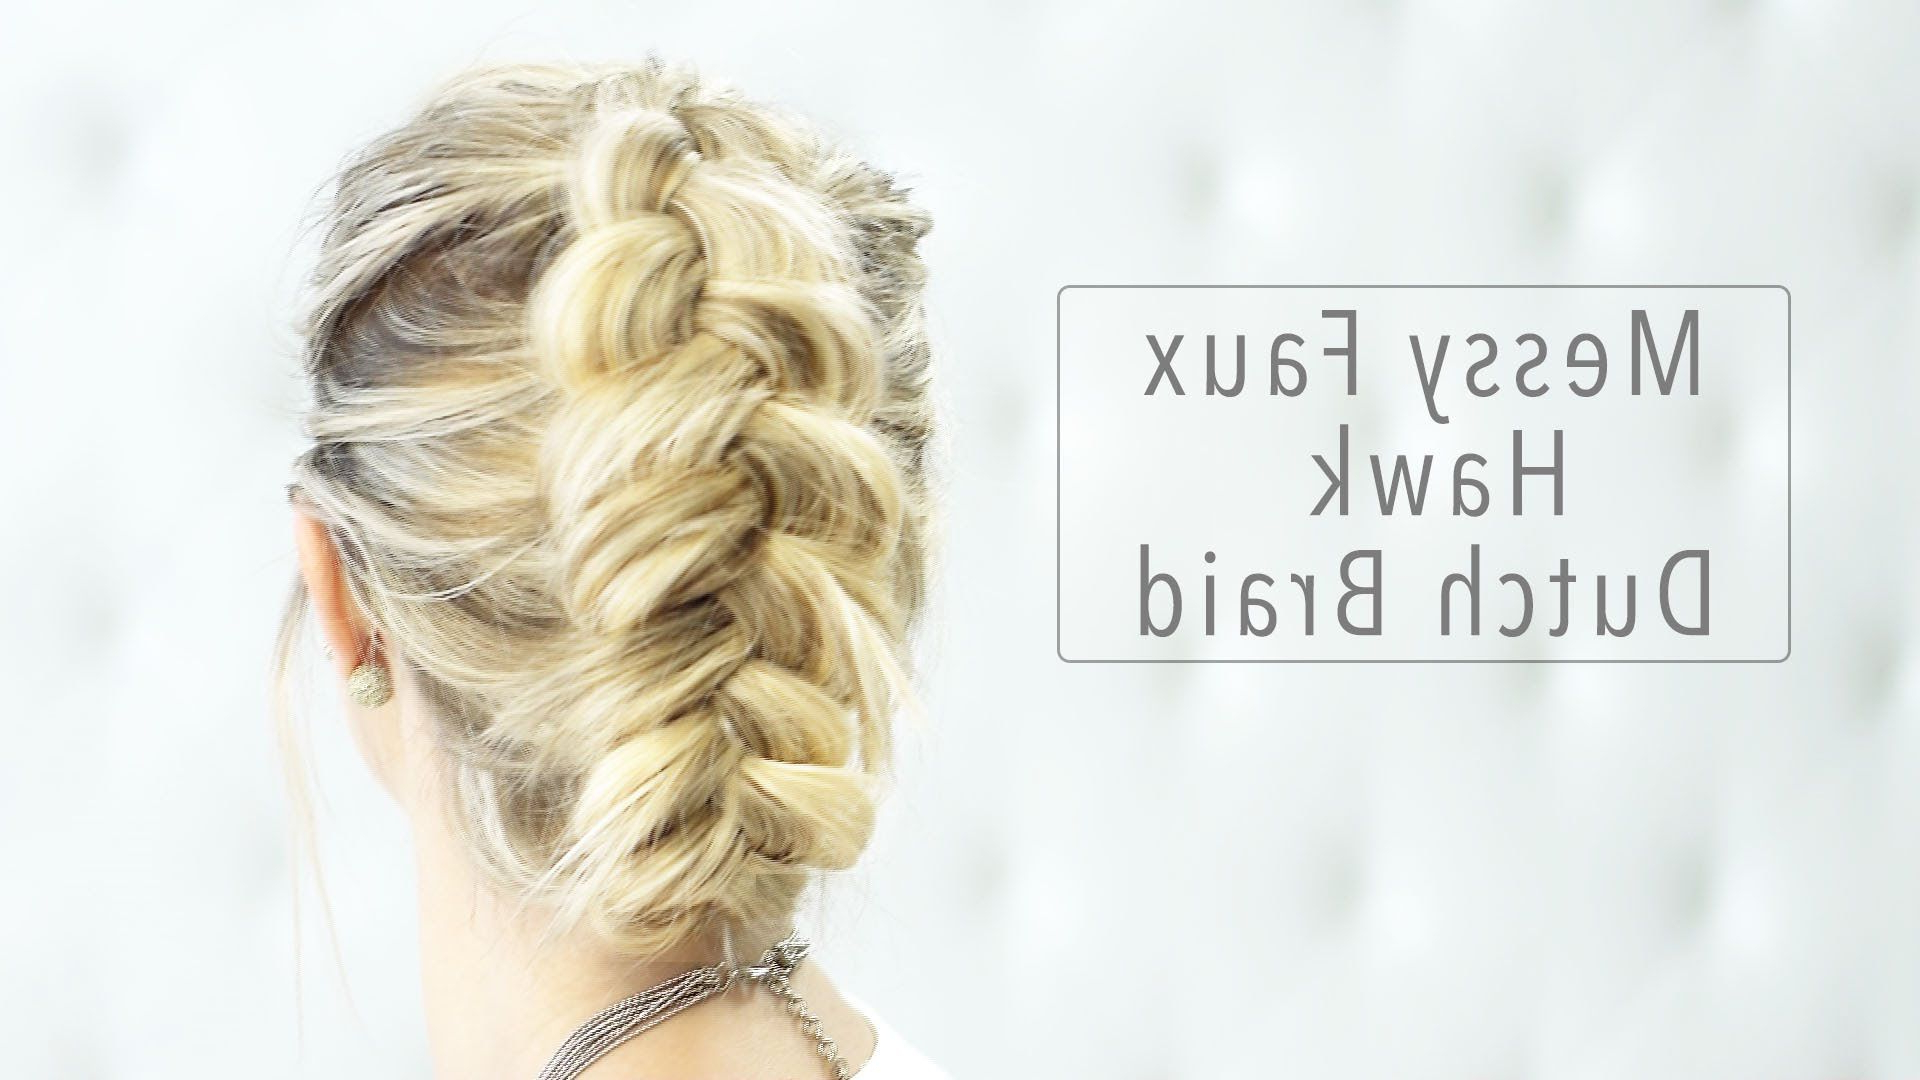 Favorite Messy Fishtail Faux Hawk Hairstyles Throughout How To Short/medium Hairstyle – Messy Faux Hawk Dutch Braid Tutorial (View 13 of 20)